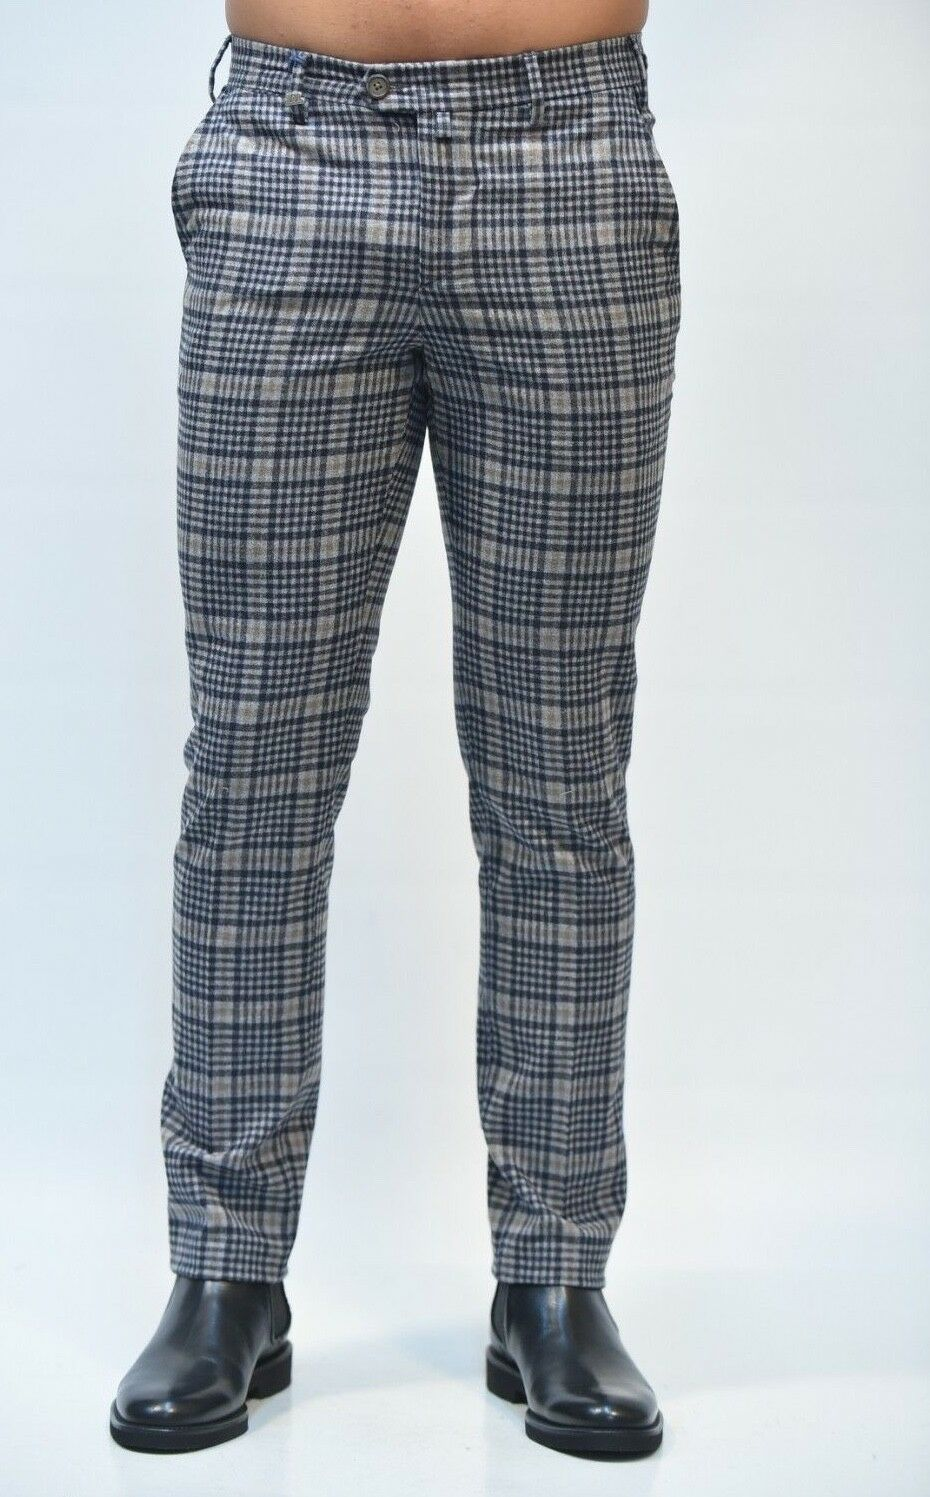 PANTALONE  - 50% BARBATI men  P-ALAN S 652 QUADRI AI 2018